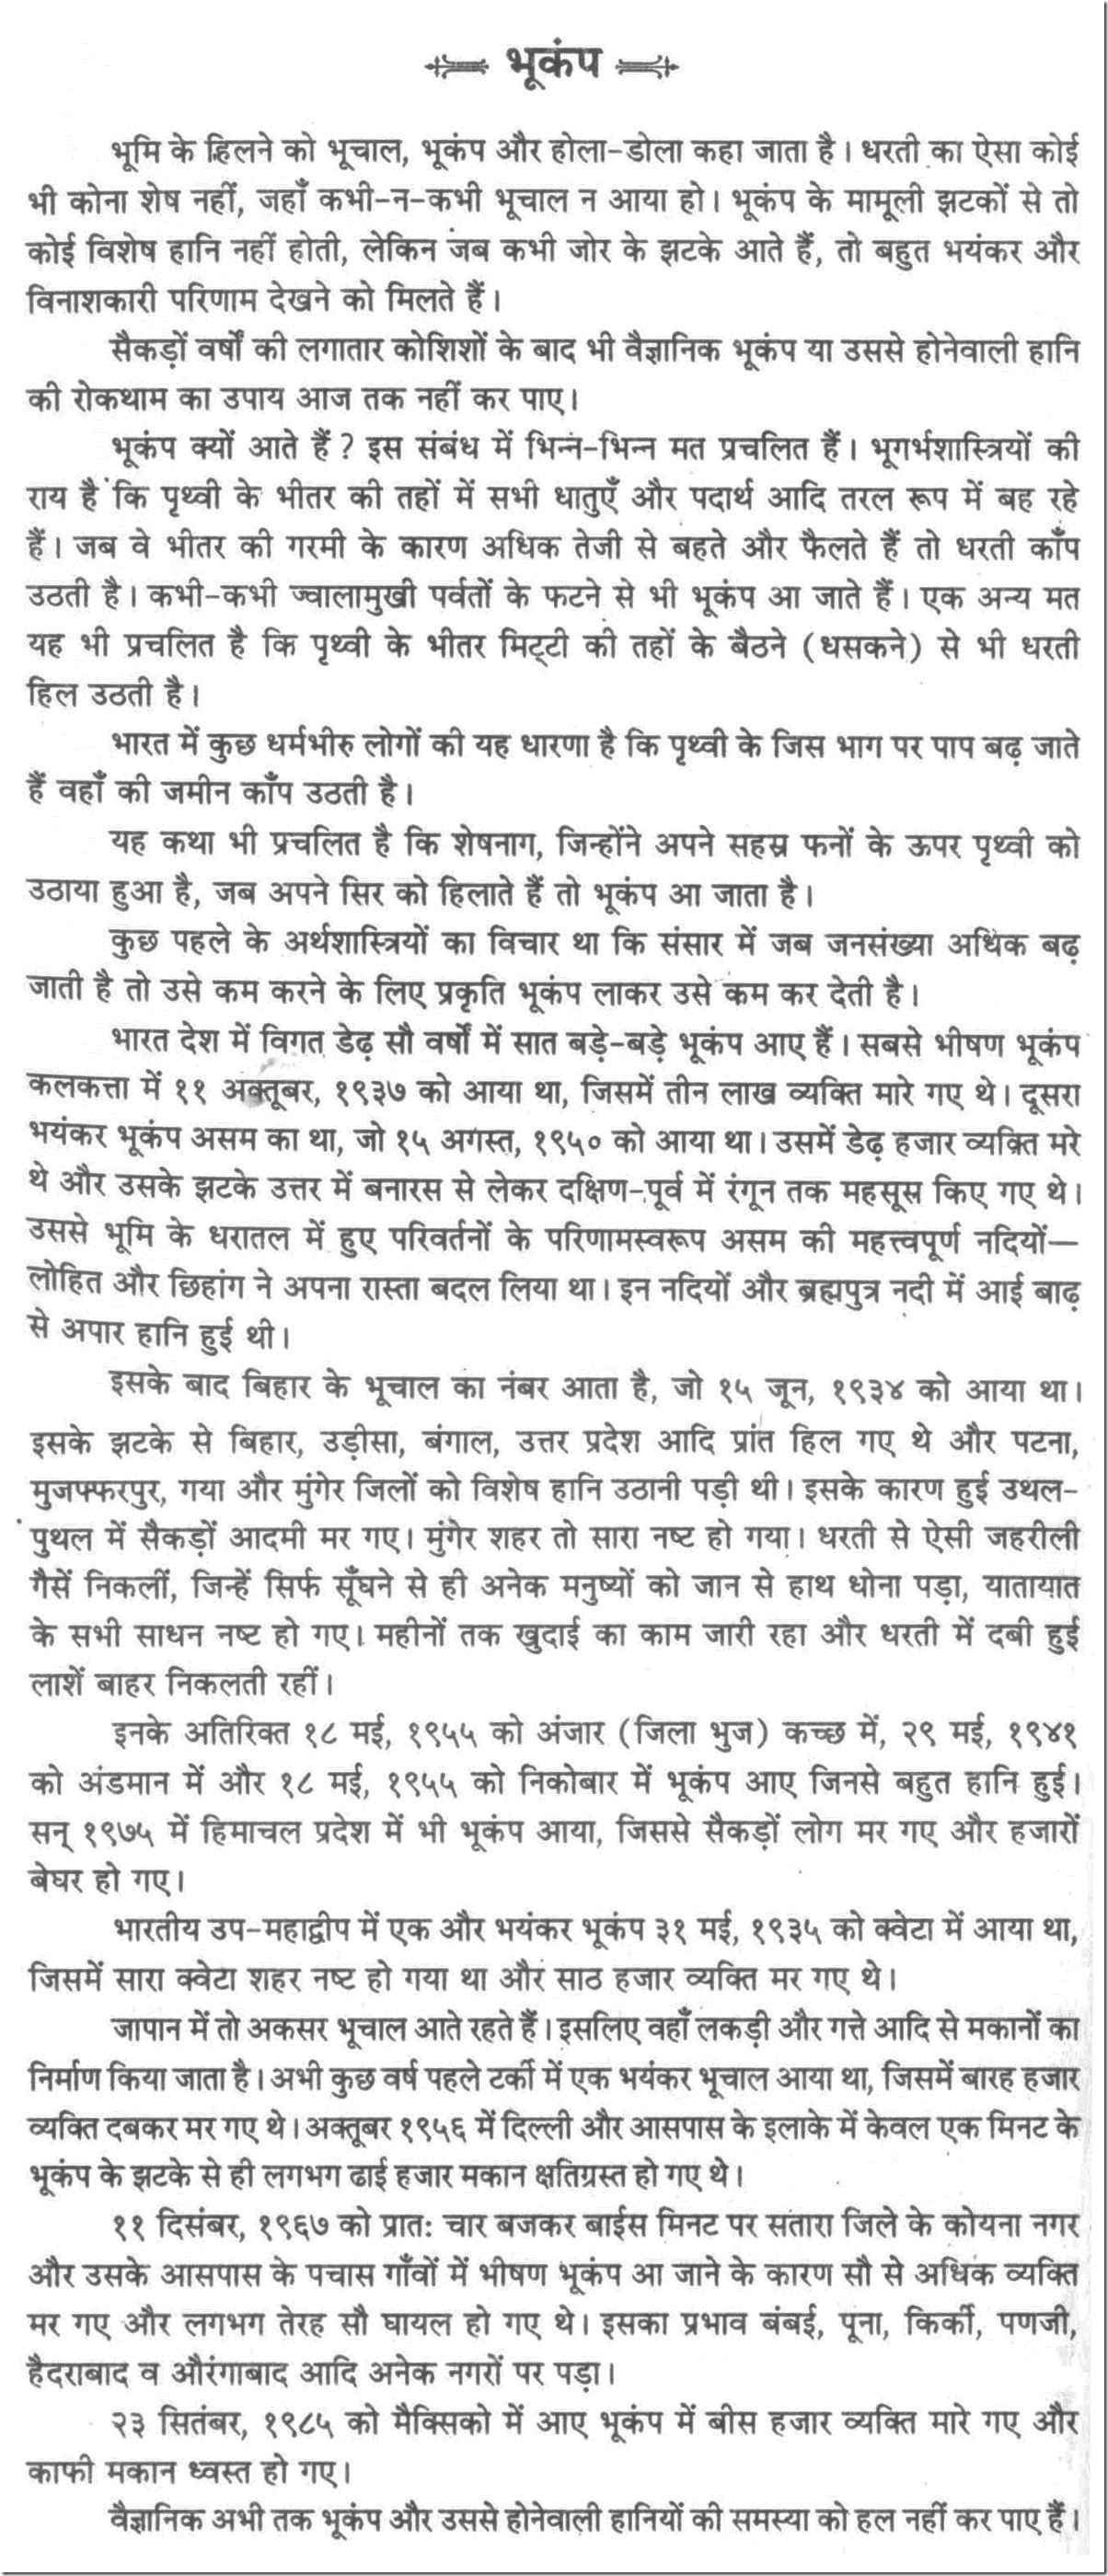 005 Essay Of Earthquake About In Questions For Students 1000115 School On Impressive Occurred India During 2011-12 English Hindi Full